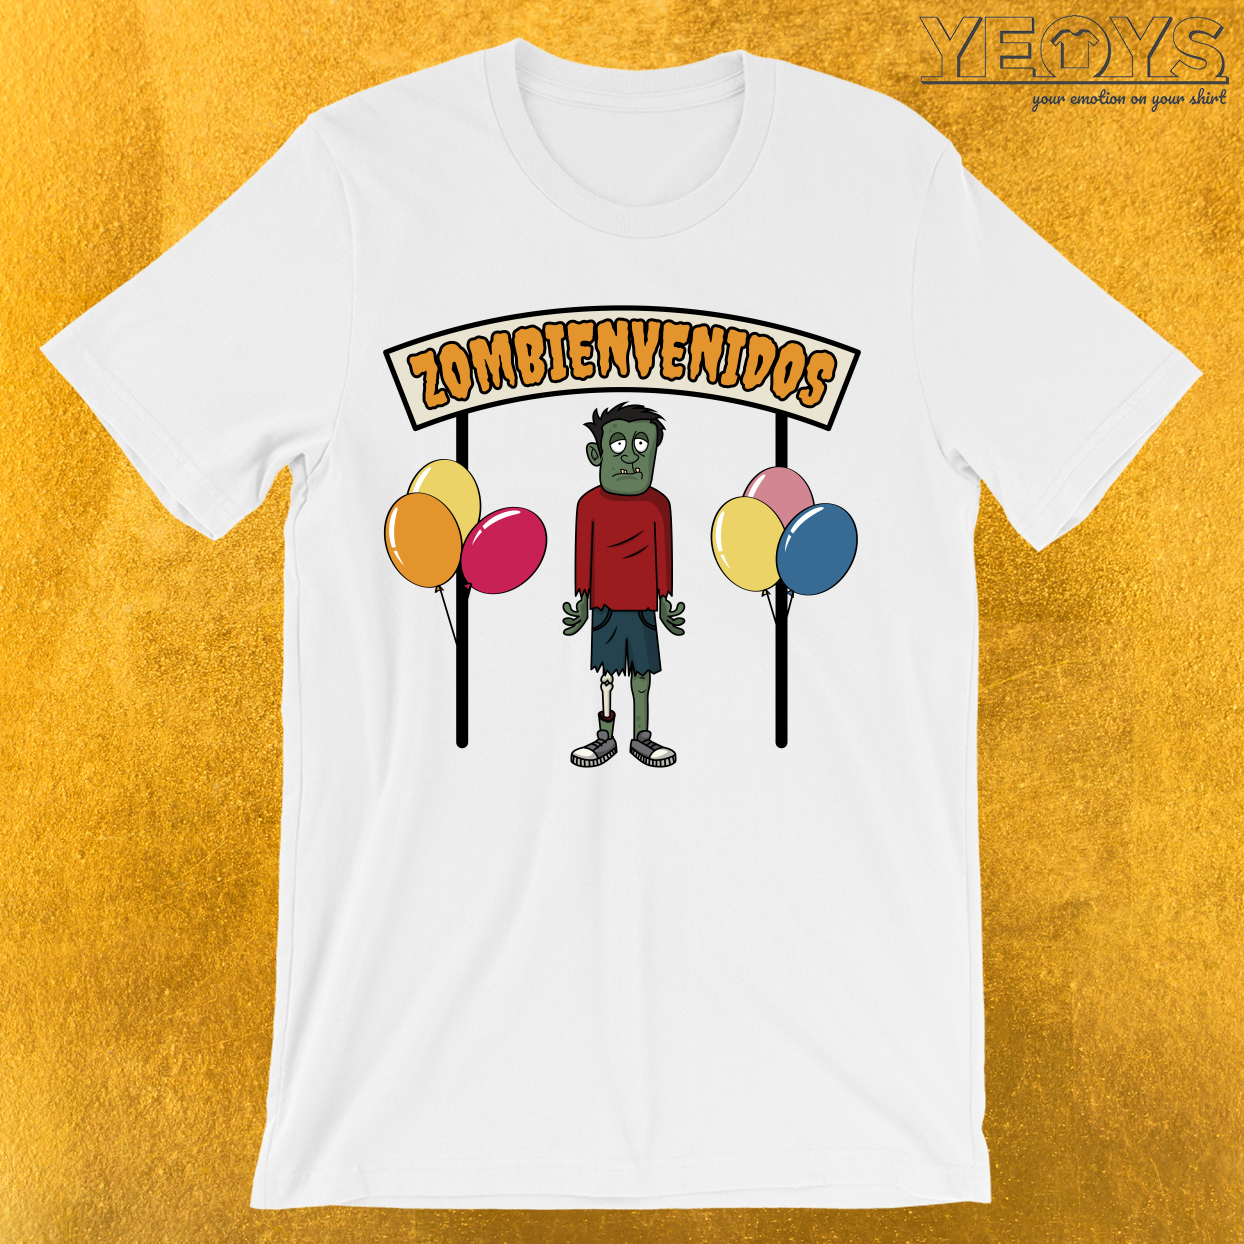 Zombienvenidos To The Party T-Shirt